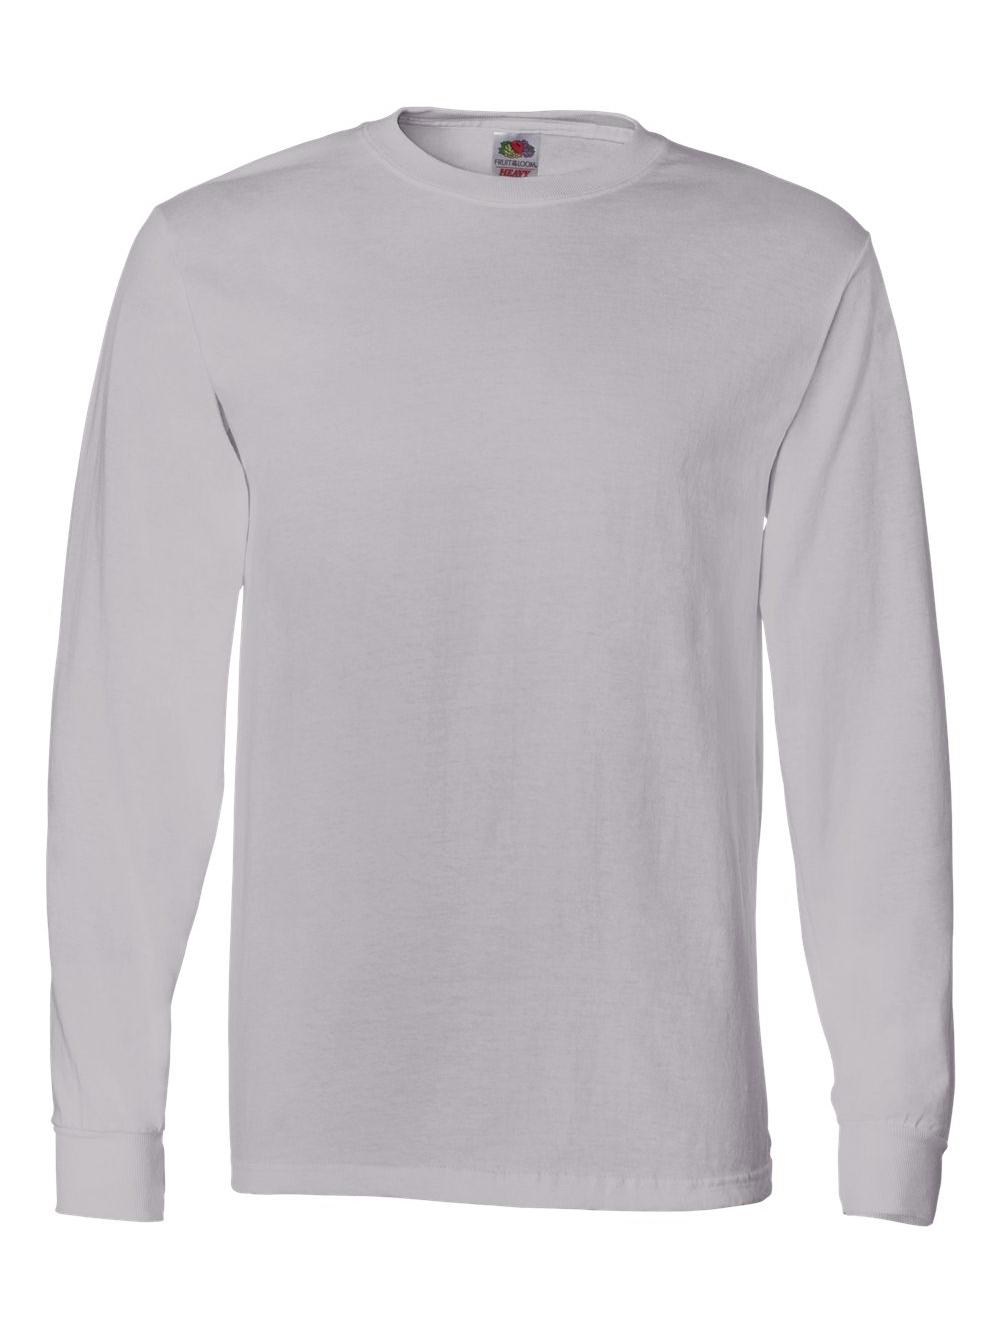 Fruit-of-the-Loom-HD-Cotton-Long-Sleeve-T-Shirt-4930R thumbnail 72